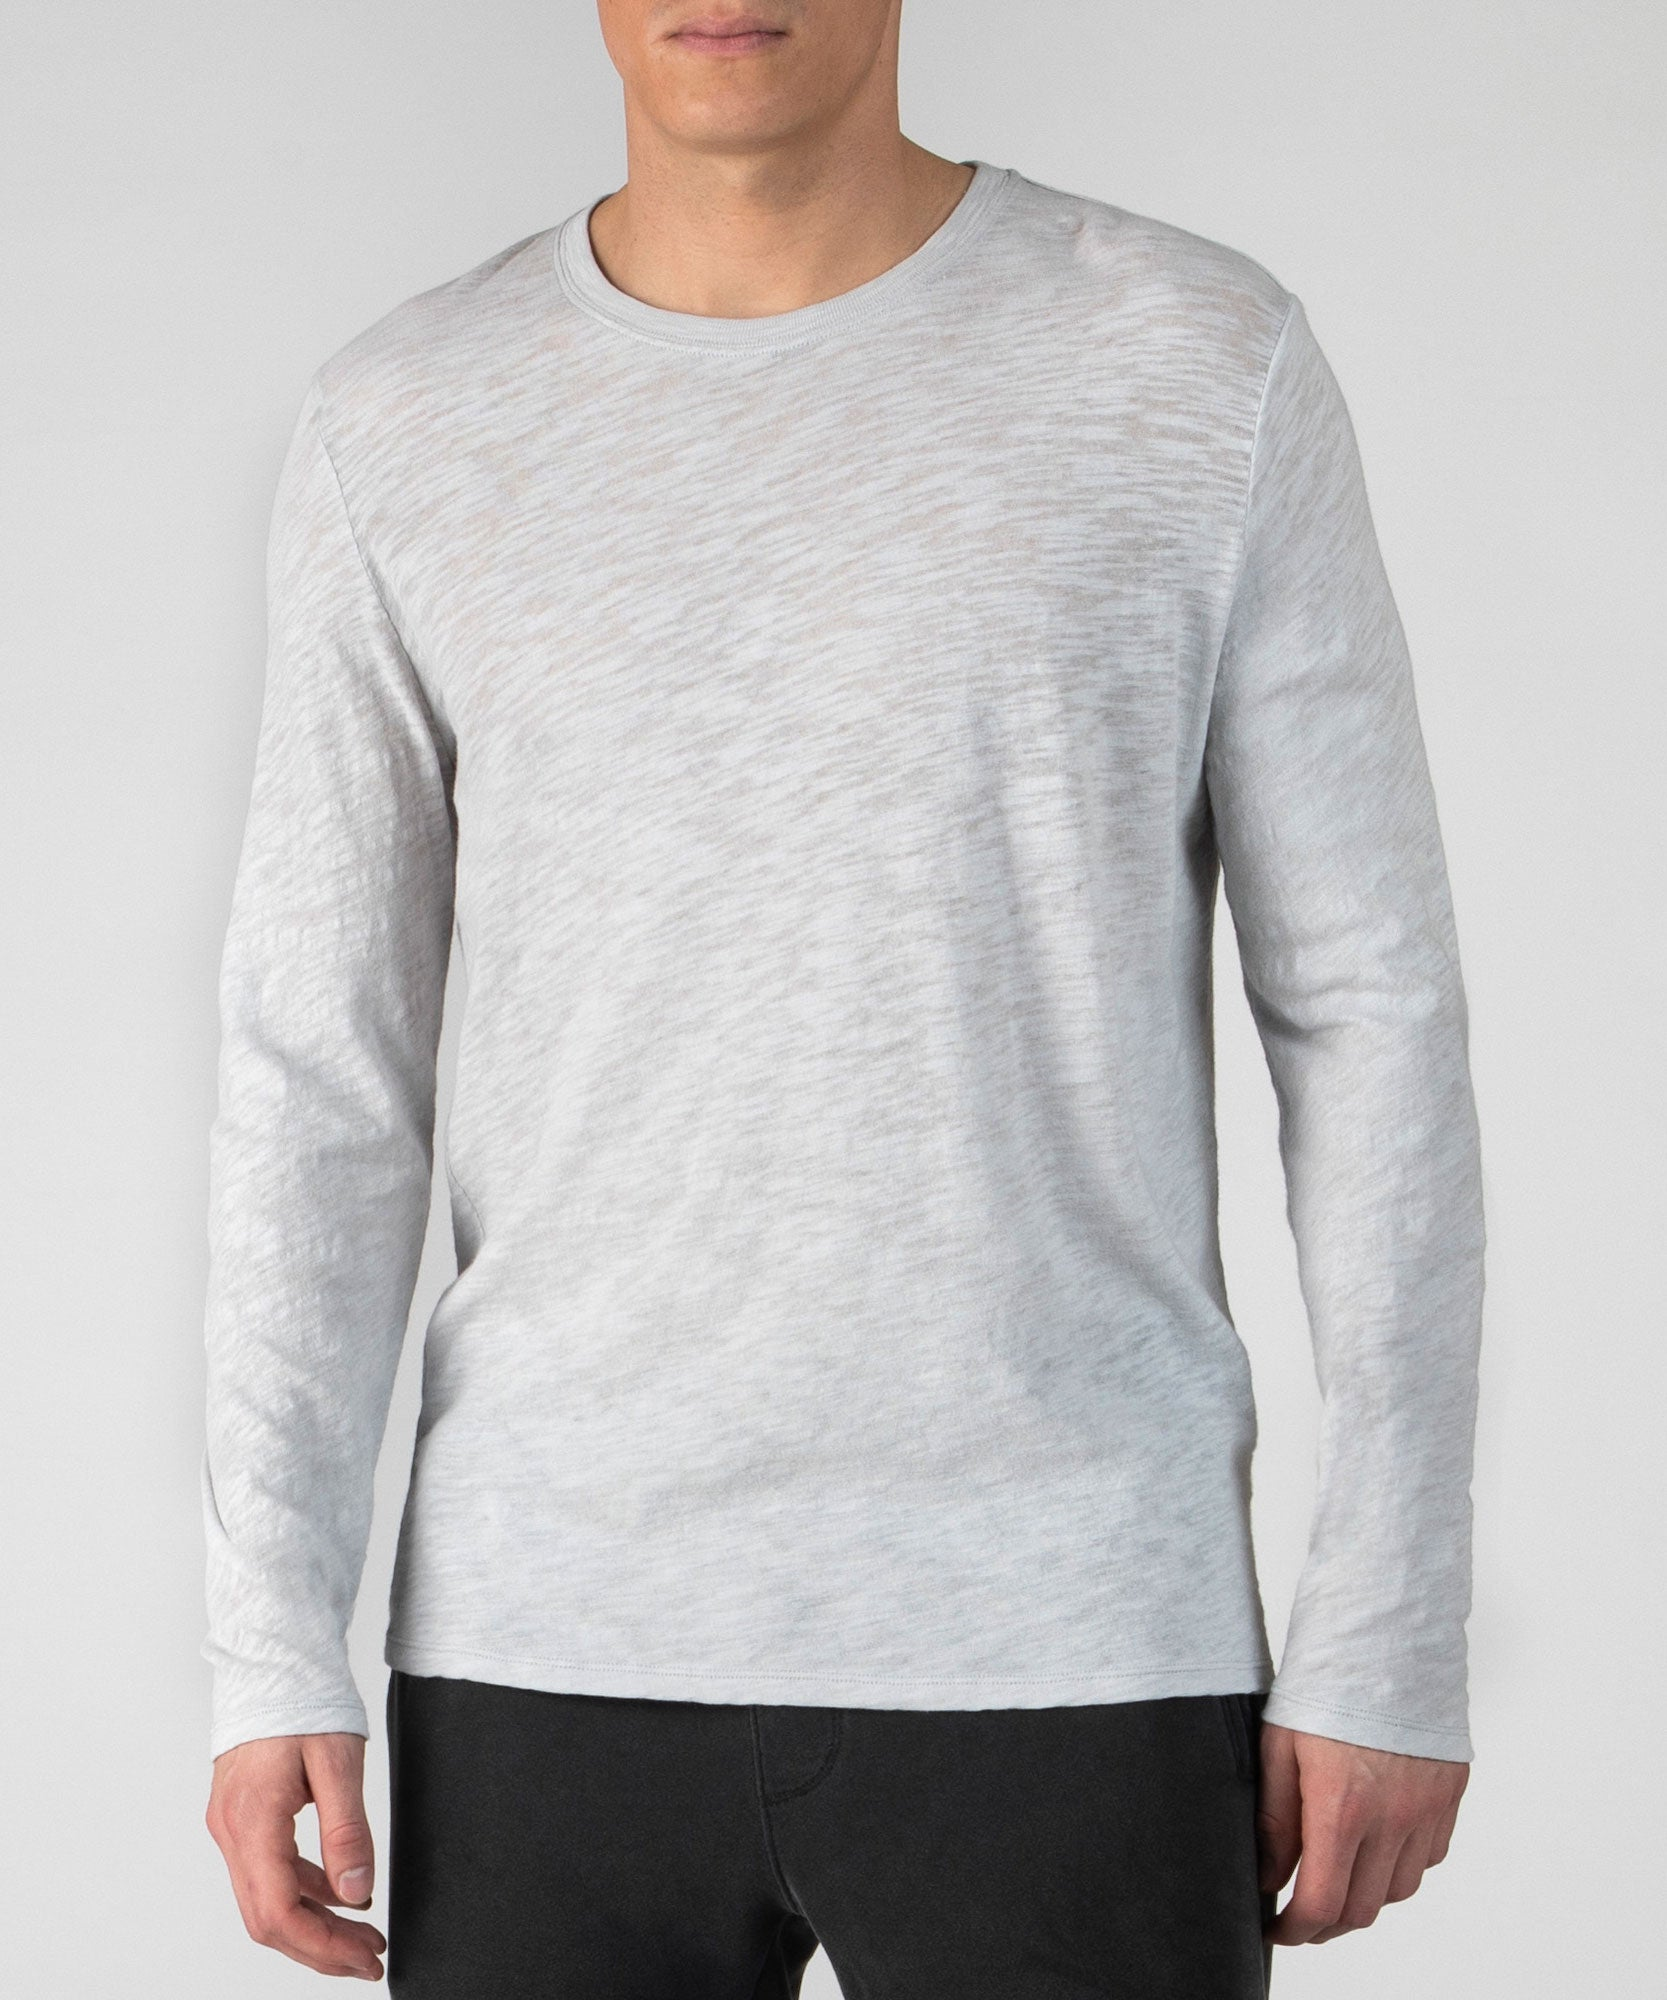 Heather Grey Slub Jersey Long Sleeve Crew Neck Tee - Men's Cotton Long Sleeve Tee by ATM Anthony Thomas Melillo